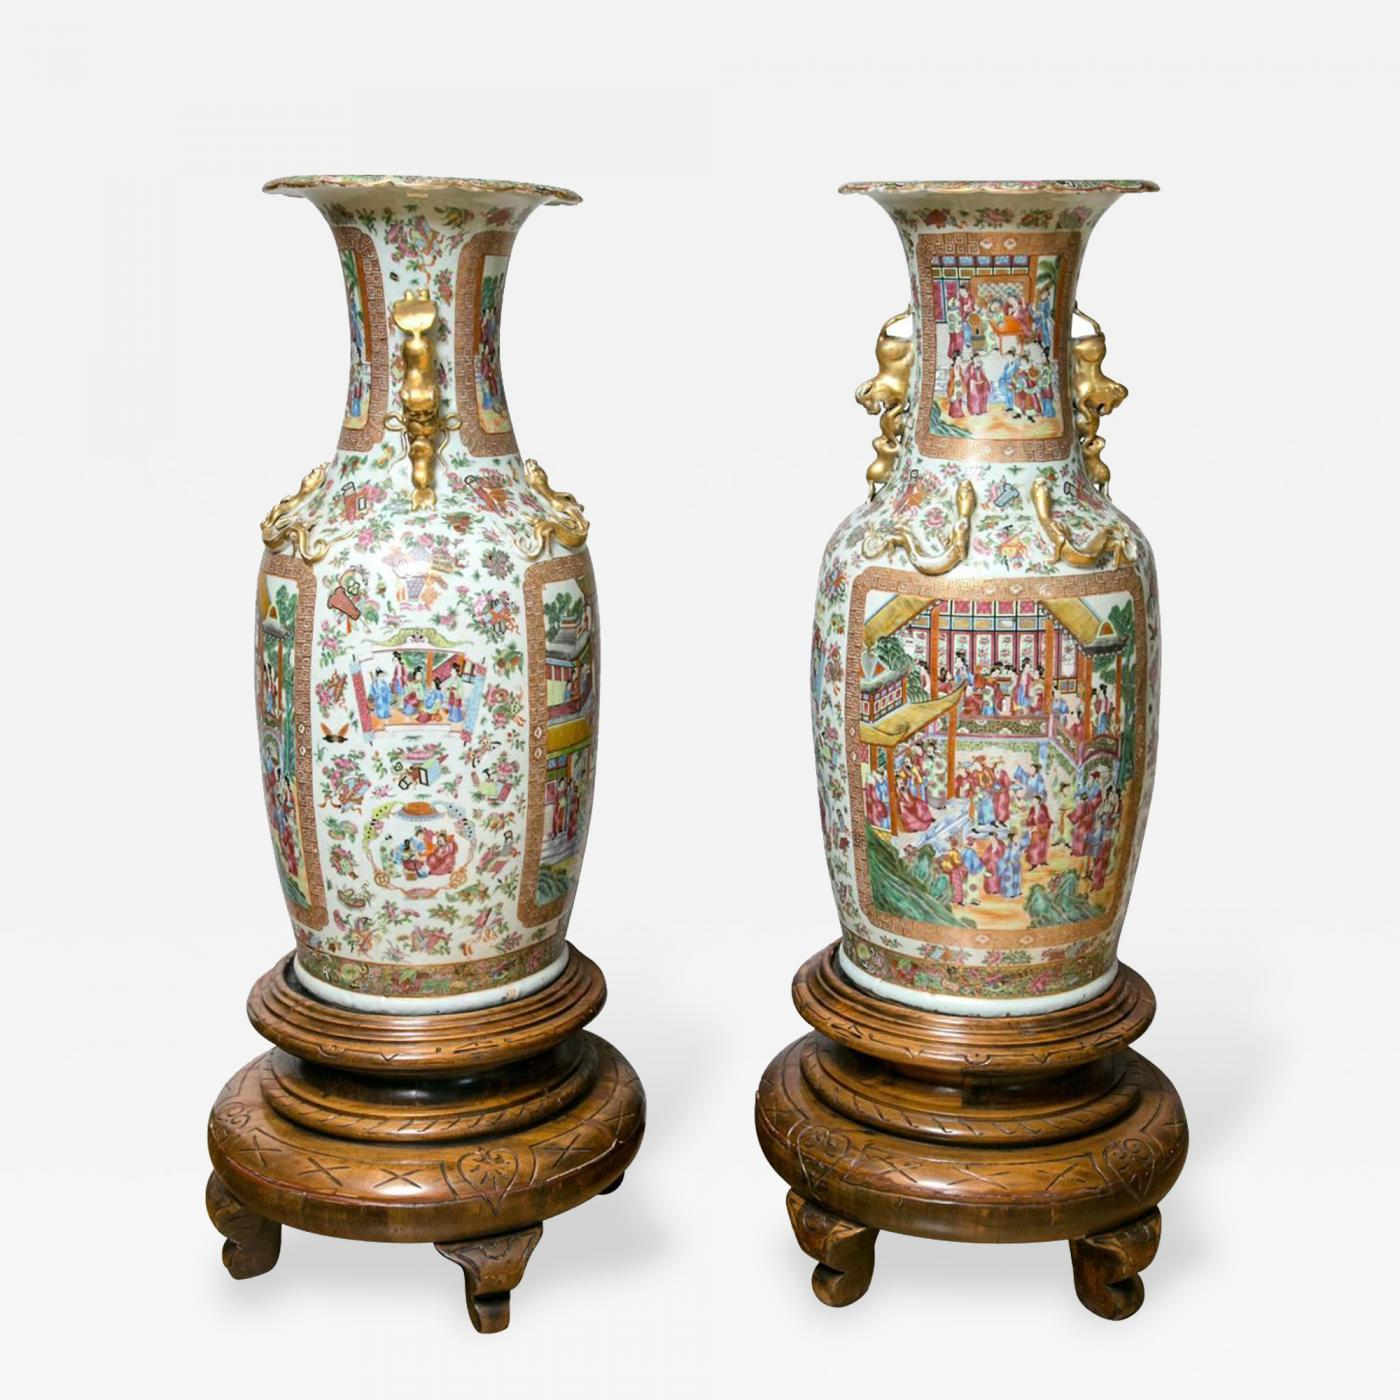 Pair Of Large 19th Century Chinese Cantonese Floor Vases